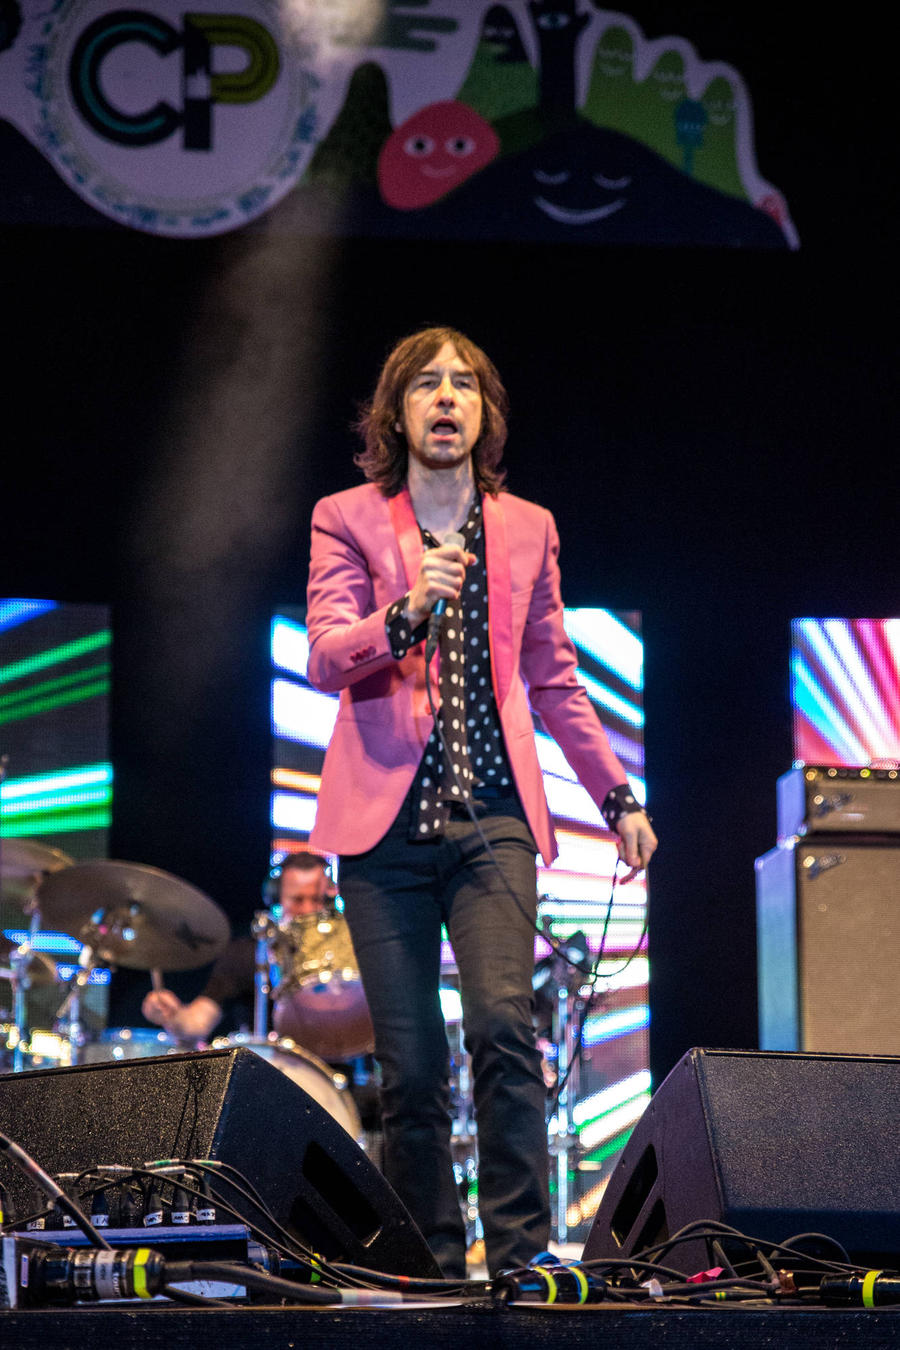 Bobby Gillespie 'In Pain' But Looking Forward To Stage Return